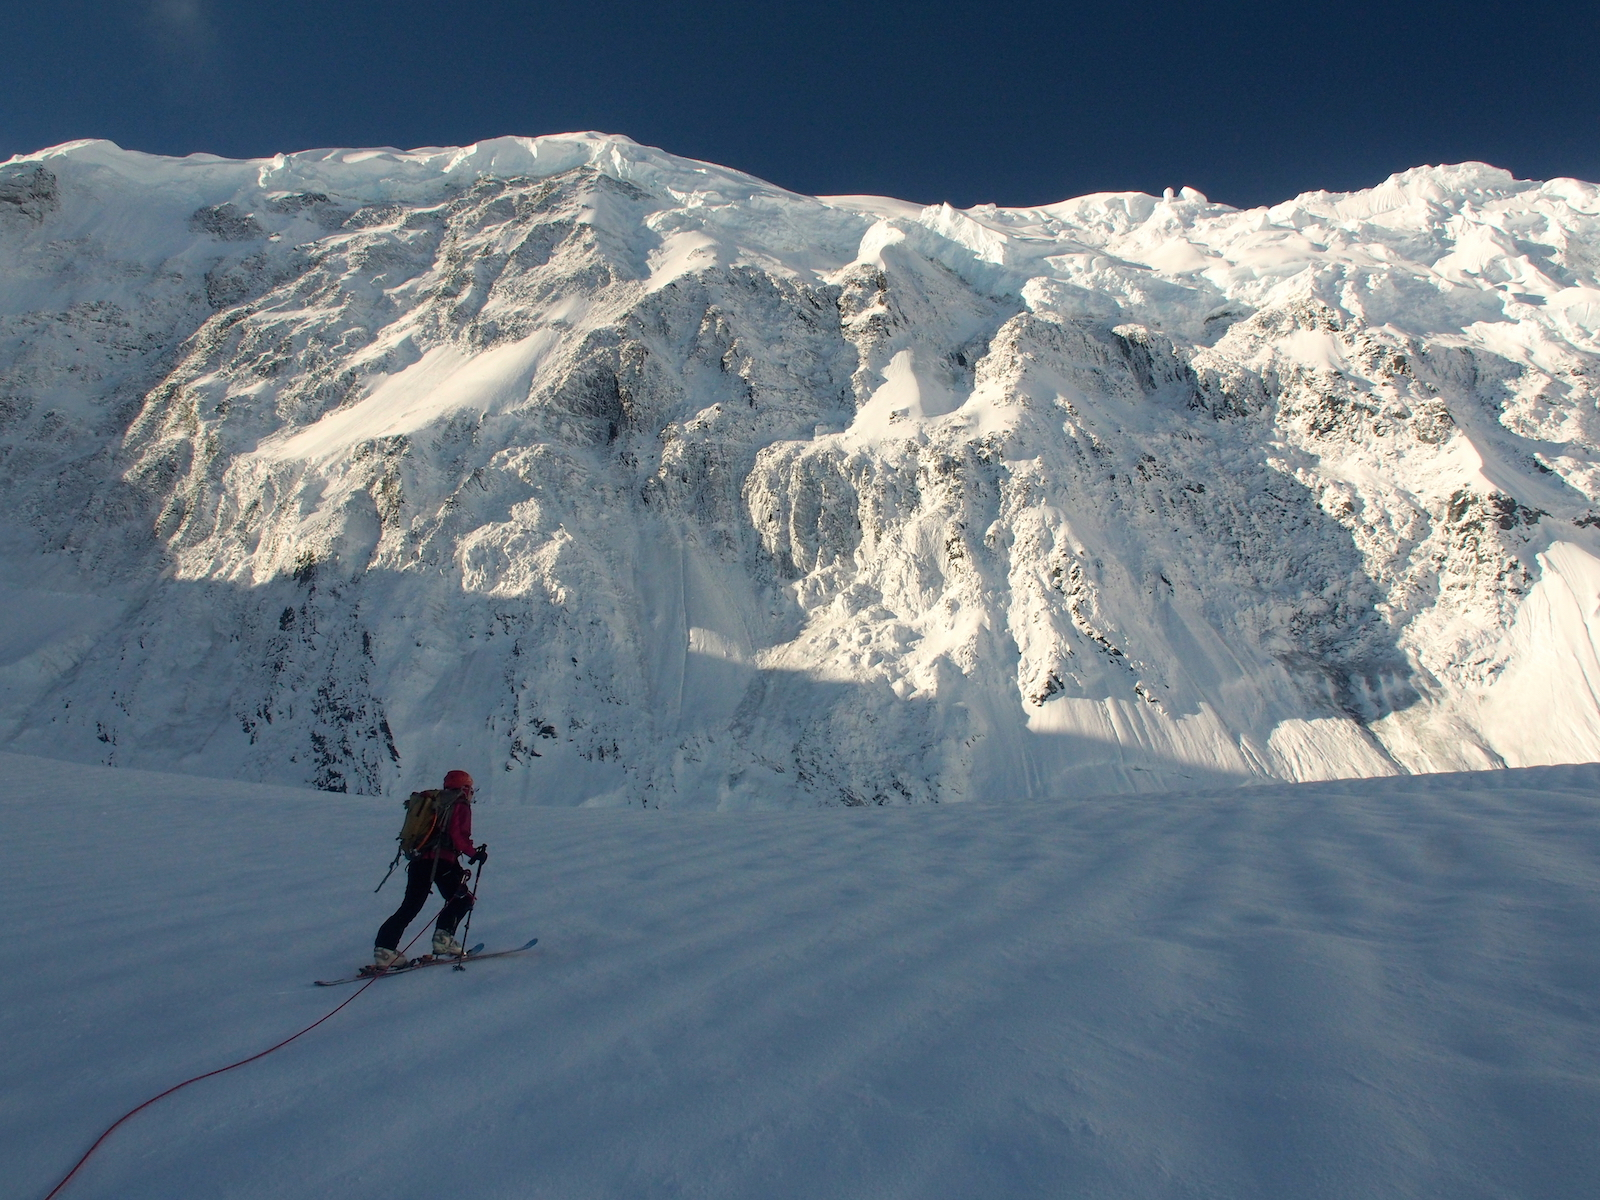 The dangerous approach below the north face of Mount Malaspina. [Photos] Natalia Martinez, Camilo Rada